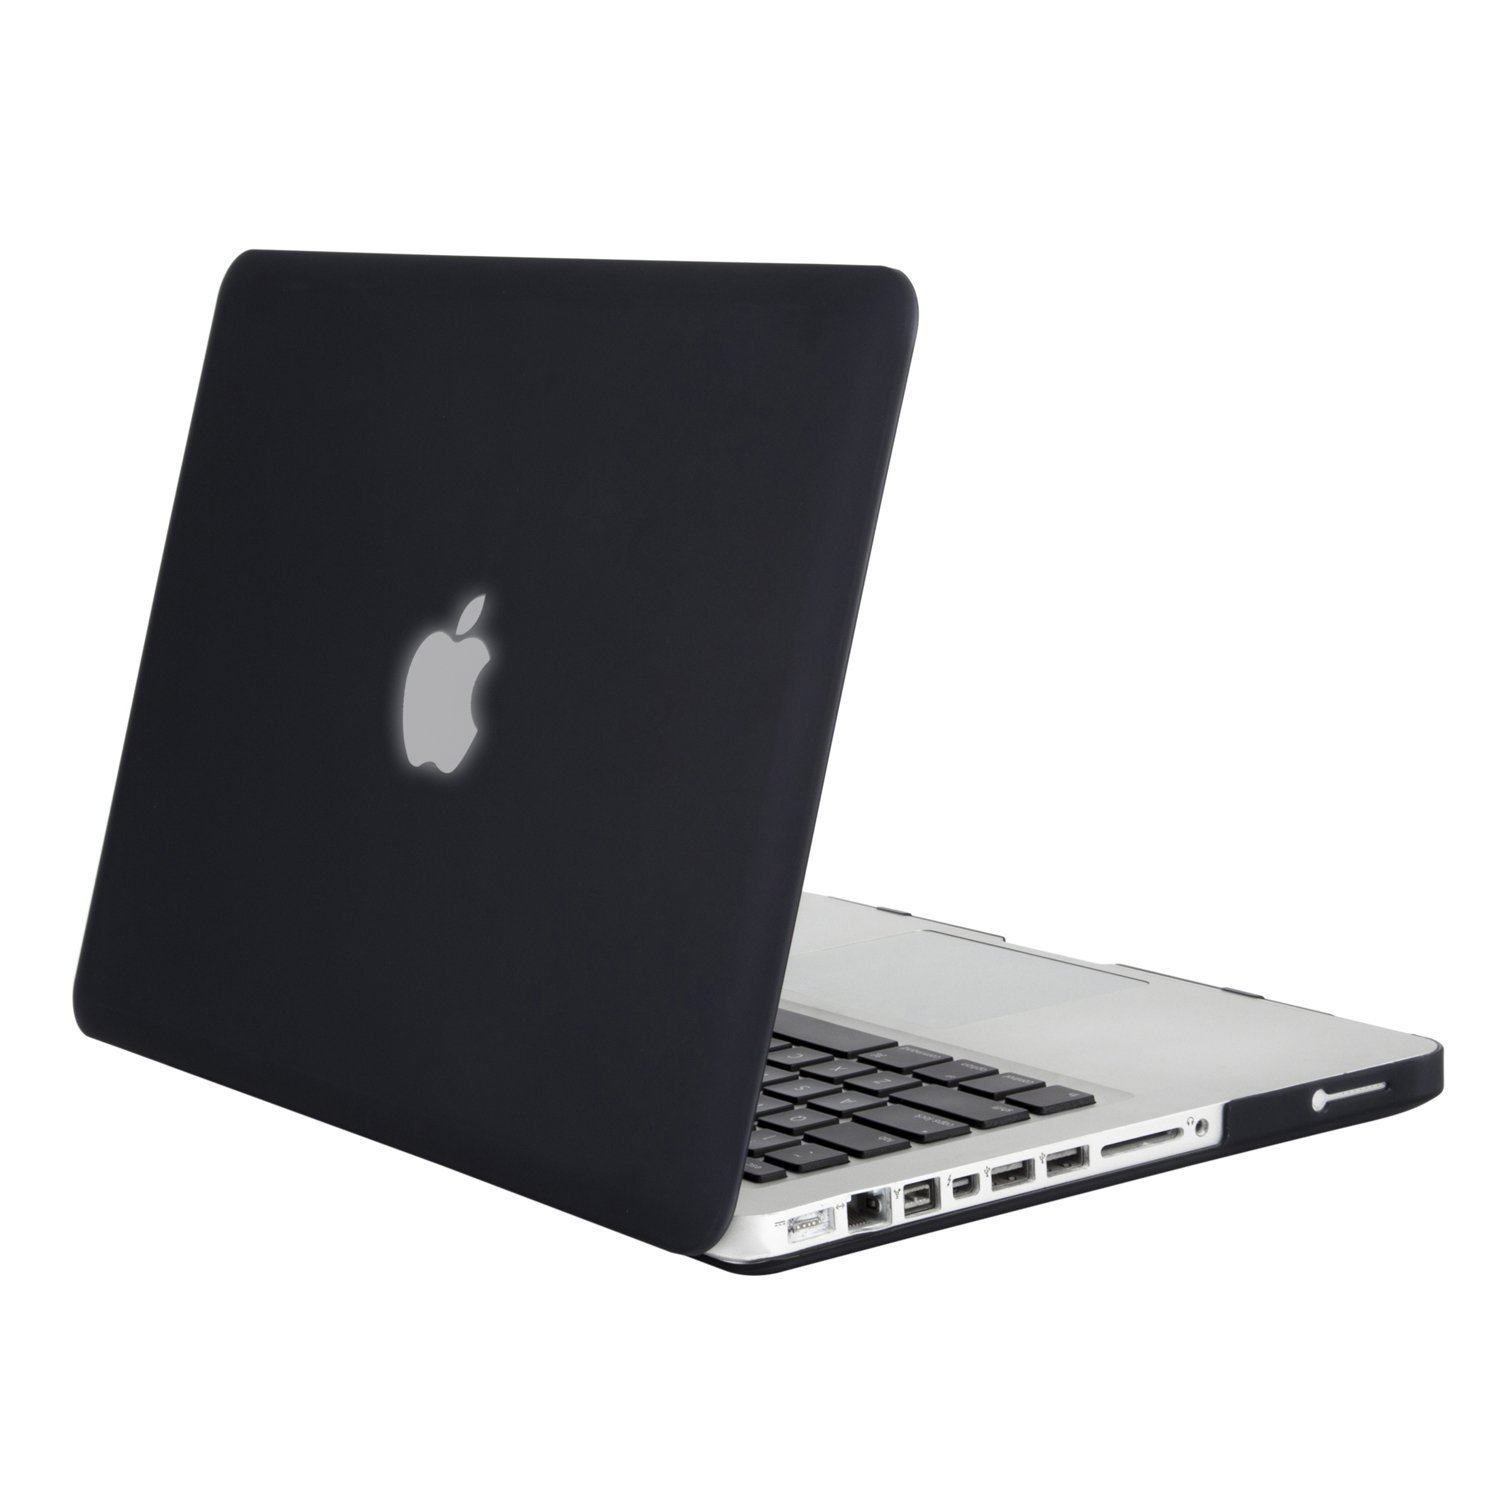 MOSISO Plastic Hard Shell Case Cover Only Compatible Old MacBook Pro 13 Inch (A1278, with CD-ROM), Release Early 2012/2011/2010/2009/2008, Black